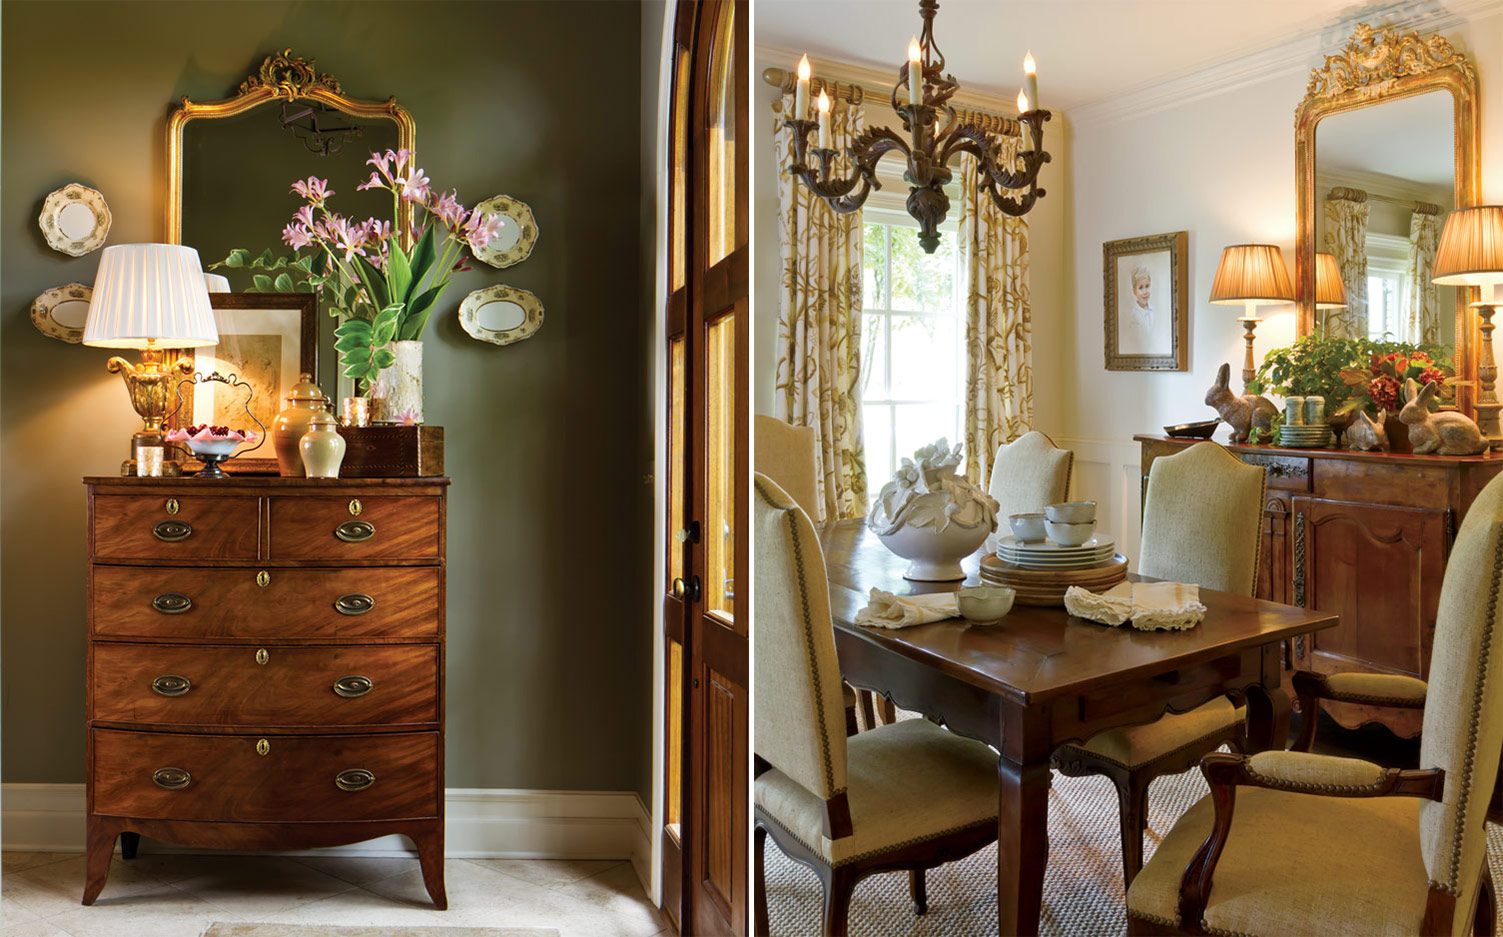 Living Room Southern Style Home Decor designer sally may on the classical southern home timeless style lady magazine